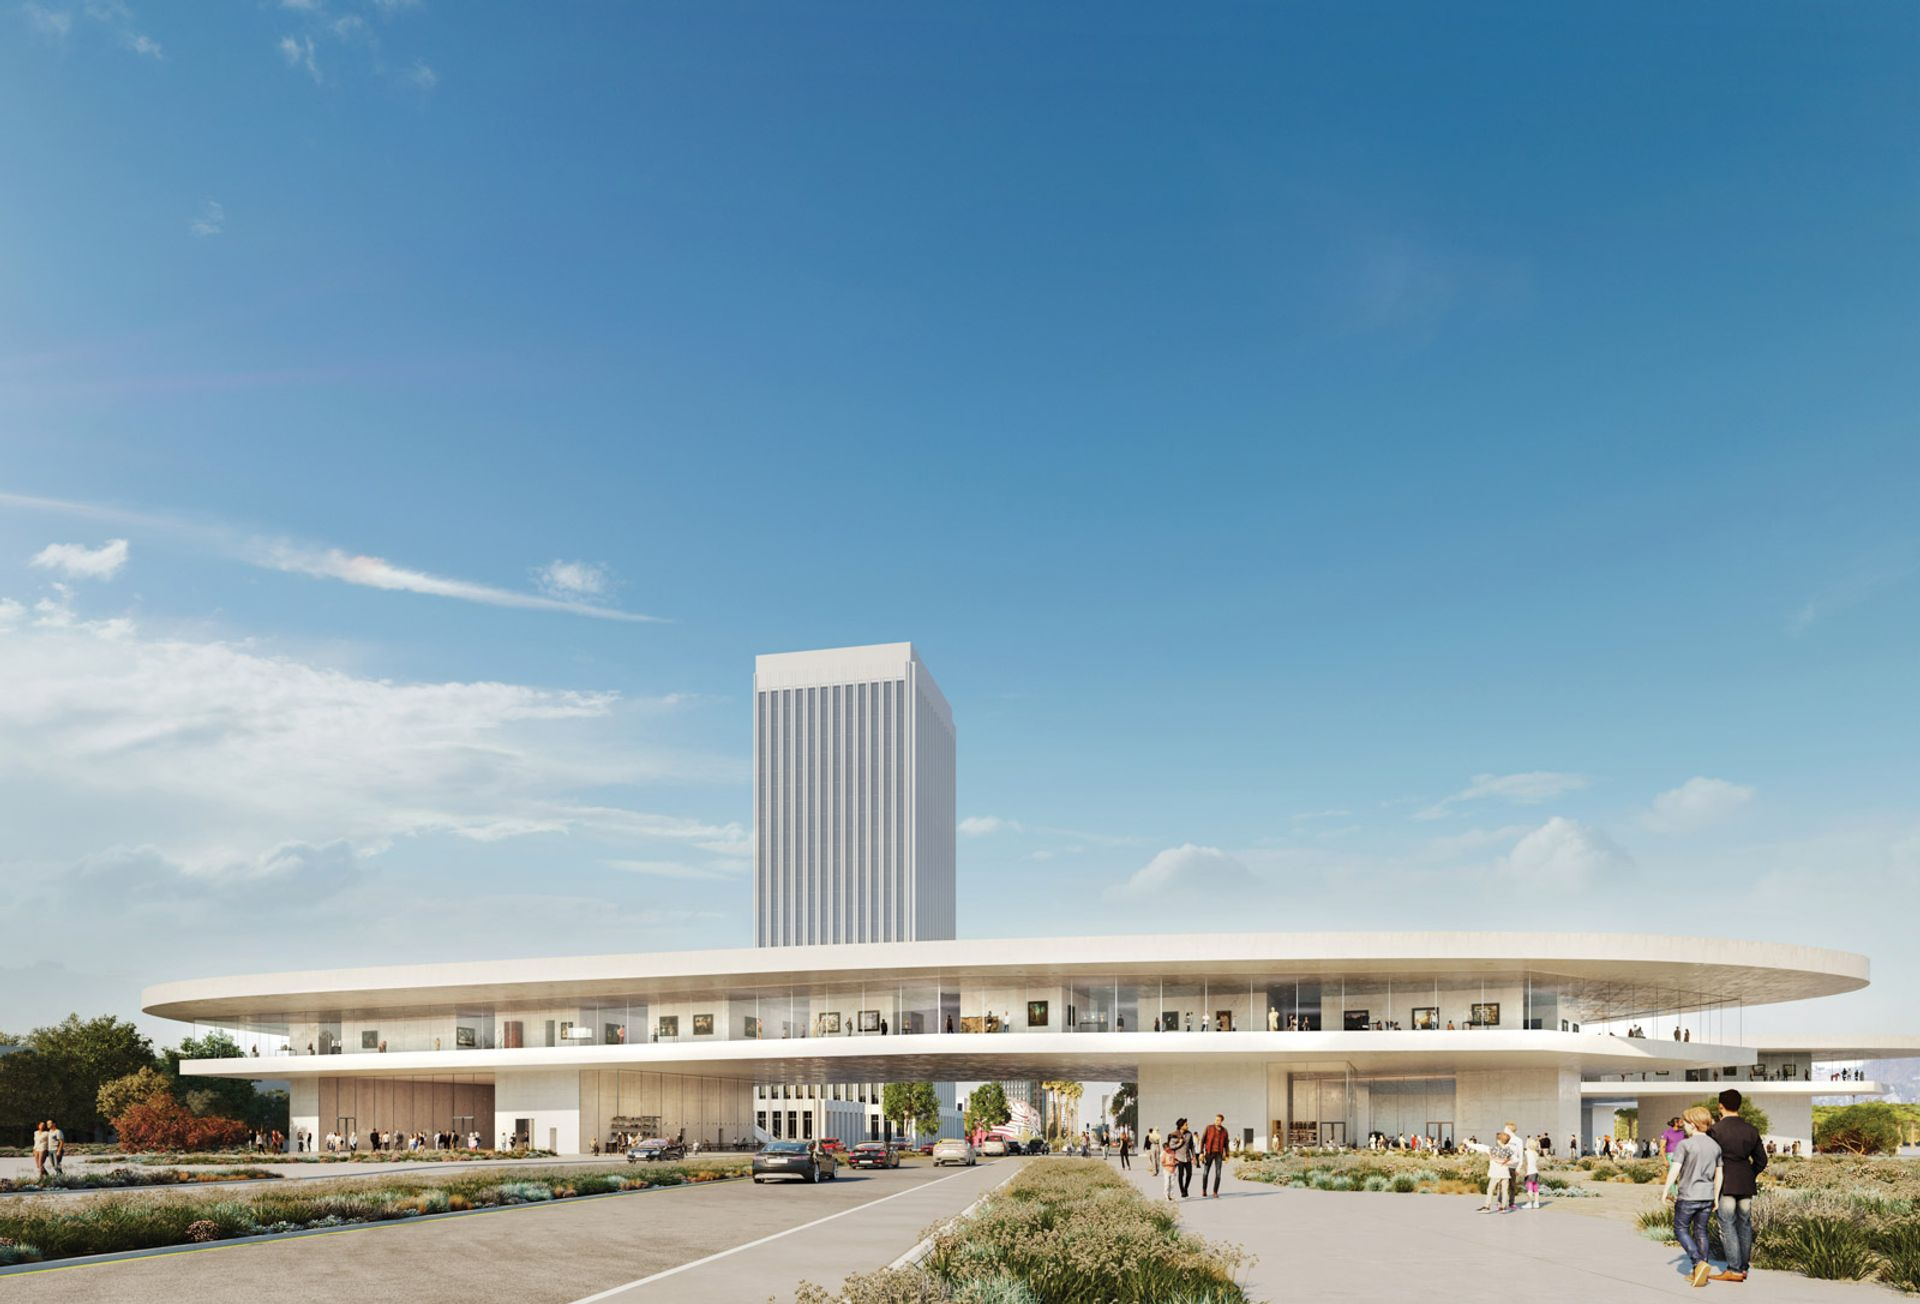 Peter Zumthor's controversial design replaces Lacma's four existing structures and straddles Wilshire Boulevard Rendering courtesy of the Los Angeles County Museum of Art.